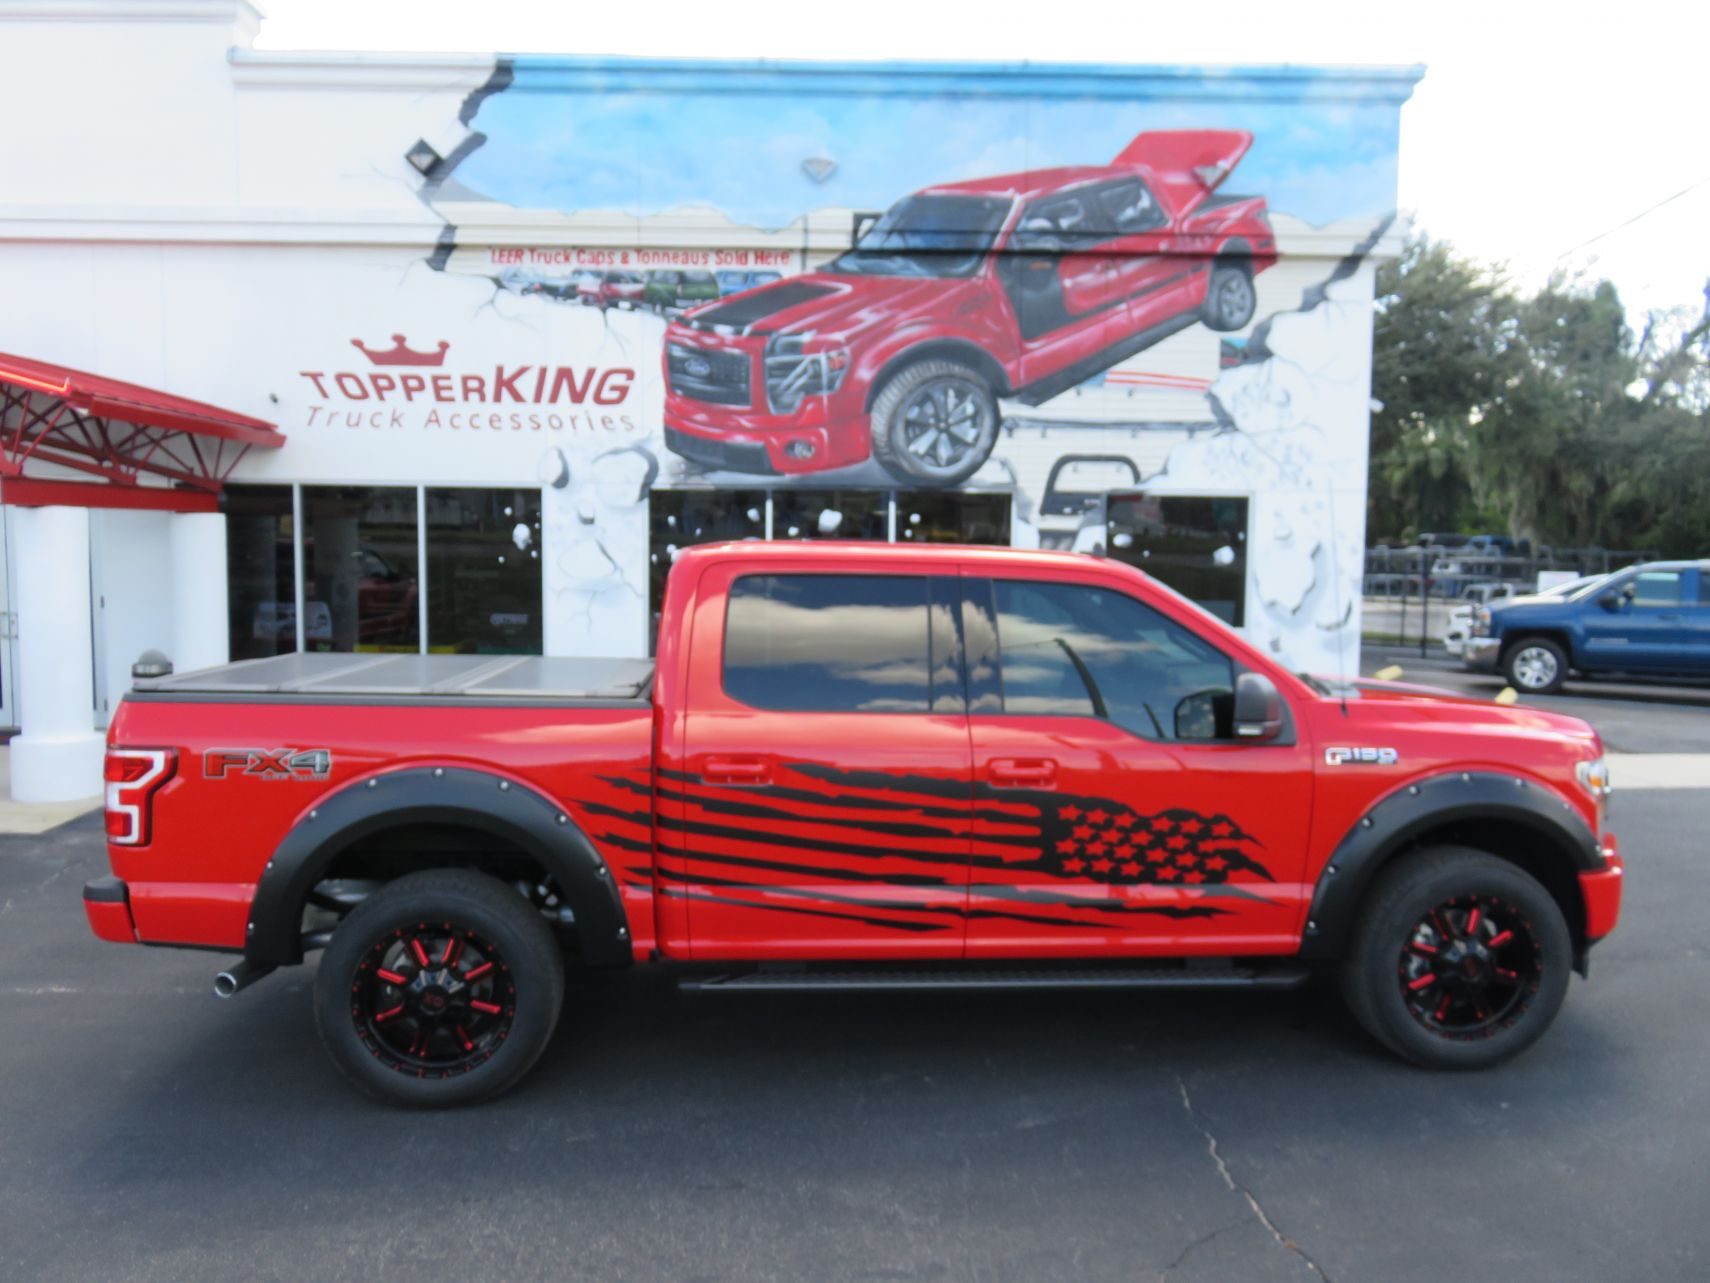 2019 Ford F150 with LEER 350M Custom Graphics, Fender Flares, Nerf Bars by TopperKING in Brandon, FL 813-689-2449 or Clearwater, FL 727-530-9066. Call now!